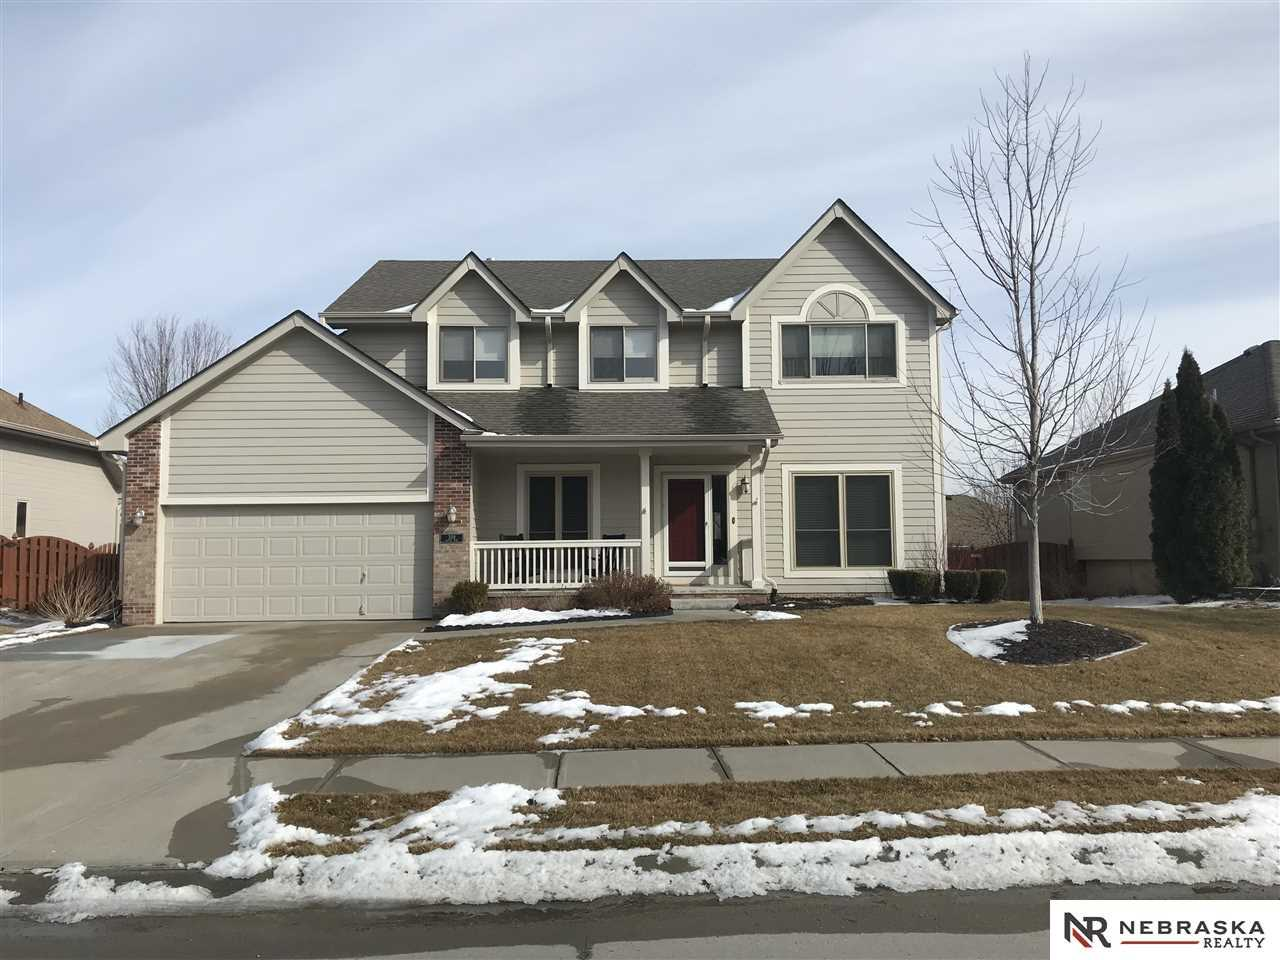 309 Castle Pine Papillion, NE 68133 | MLS 21802856 Photo 1